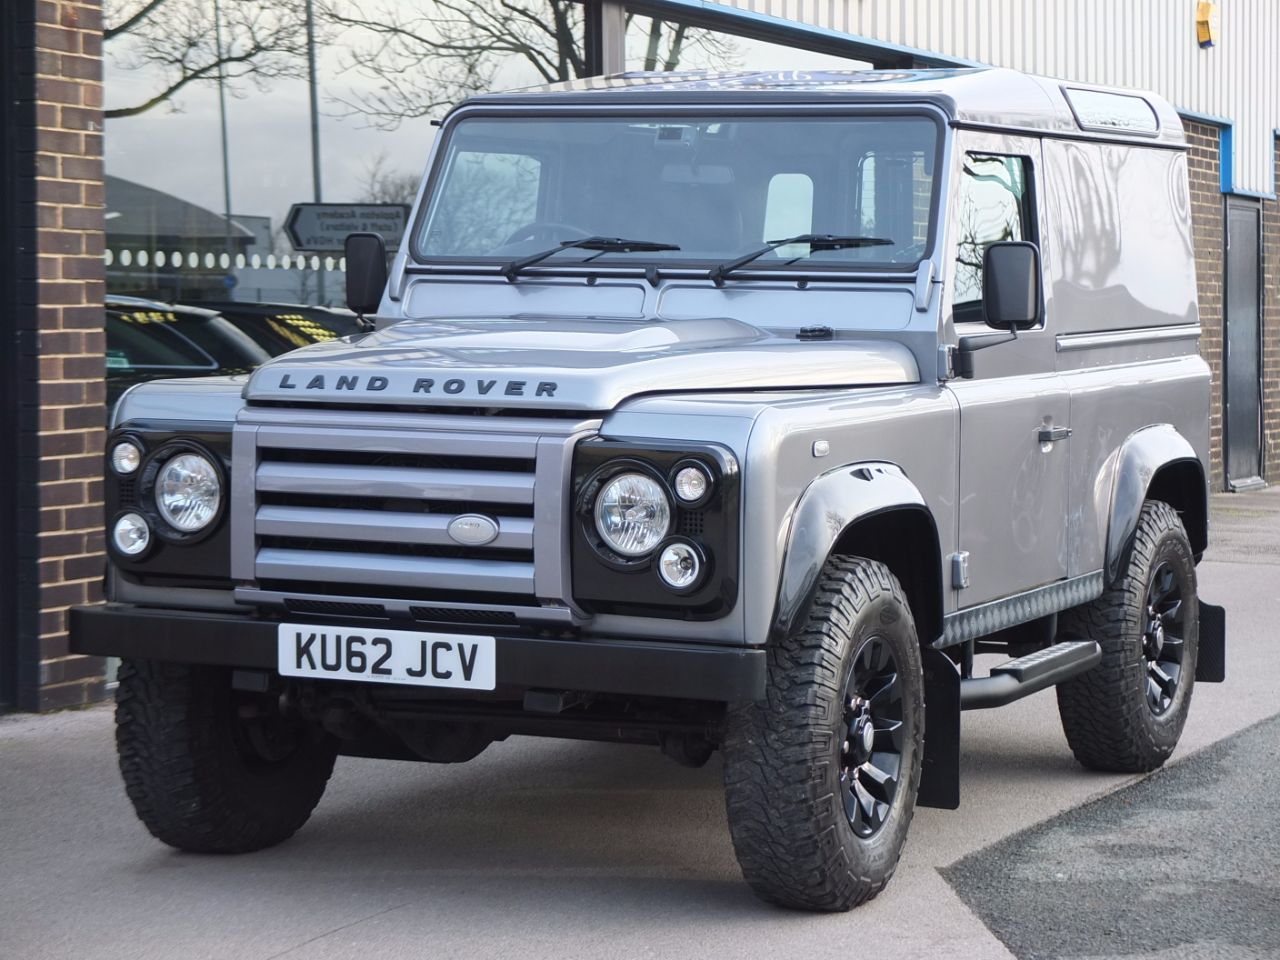 Land Rover Defender 90 2.2TD X-Tech Hard Top (£22750 Plus VAT) Four Wheel Drive Diesel Orkney Grey MetallicLand Rover Defender 90 2.2TD X-Tech Hard Top (£22750 Plus VAT) Four Wheel Drive Diesel Orkney Grey Metallic at fa Roper Ltd Bradford